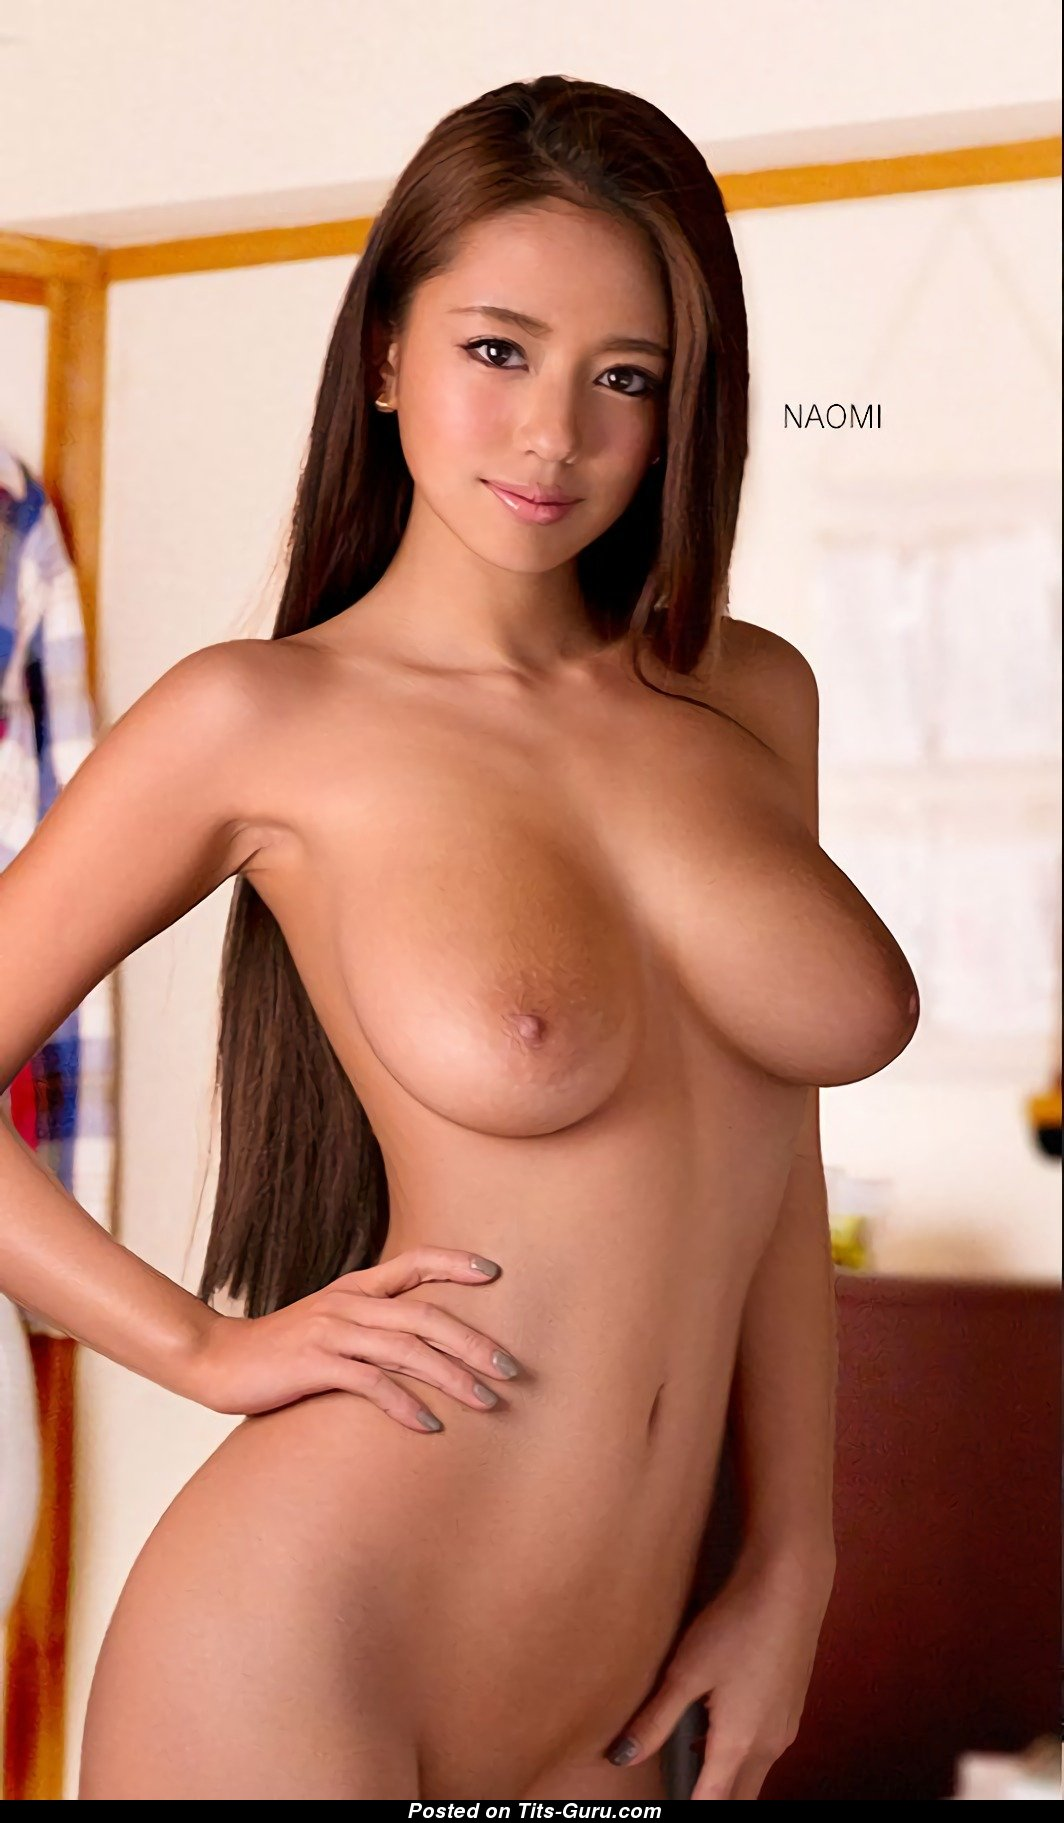 Naomi - Asian Brunette Pornstar With Nude Natural Regular -2163